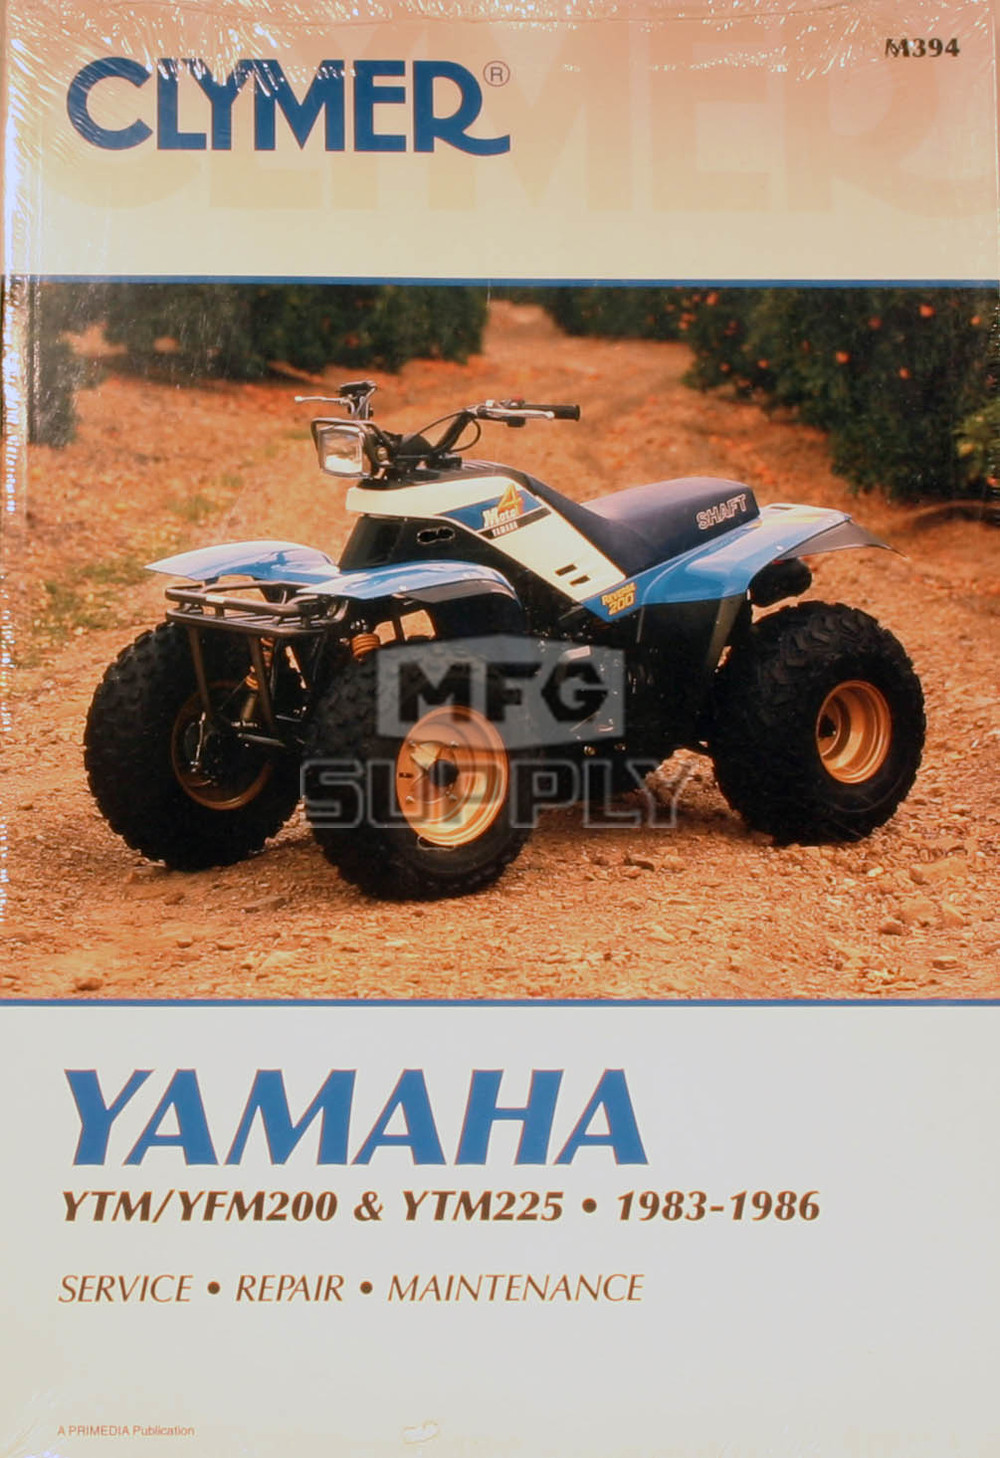 [DIAGRAM_38YU]  F67A7D3 Wiring Diagram For Yamaha Ytm 225dx | Wiring Resources | Wiring Diagram For Yahama Ytm 225dx |  | Wiring Resources